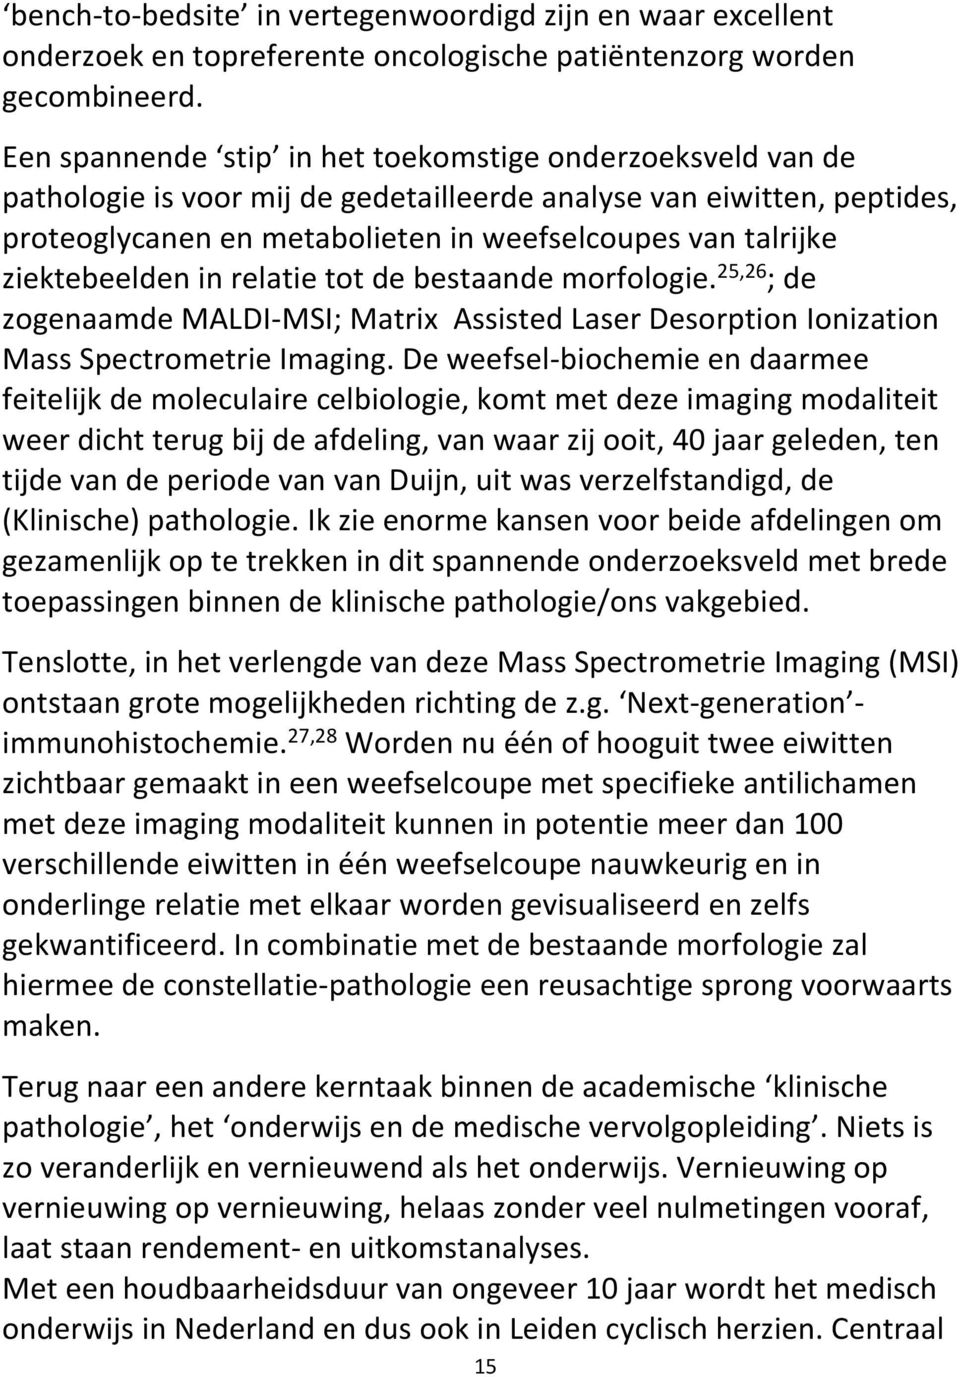 ziektebeelden in relatie tot de bestaande morfologie. 25,26 ; de zogenaamde MALDI-MSI; Matrix Assisted Laser Desorption Ionization Mass Spectrometrie Imaging.